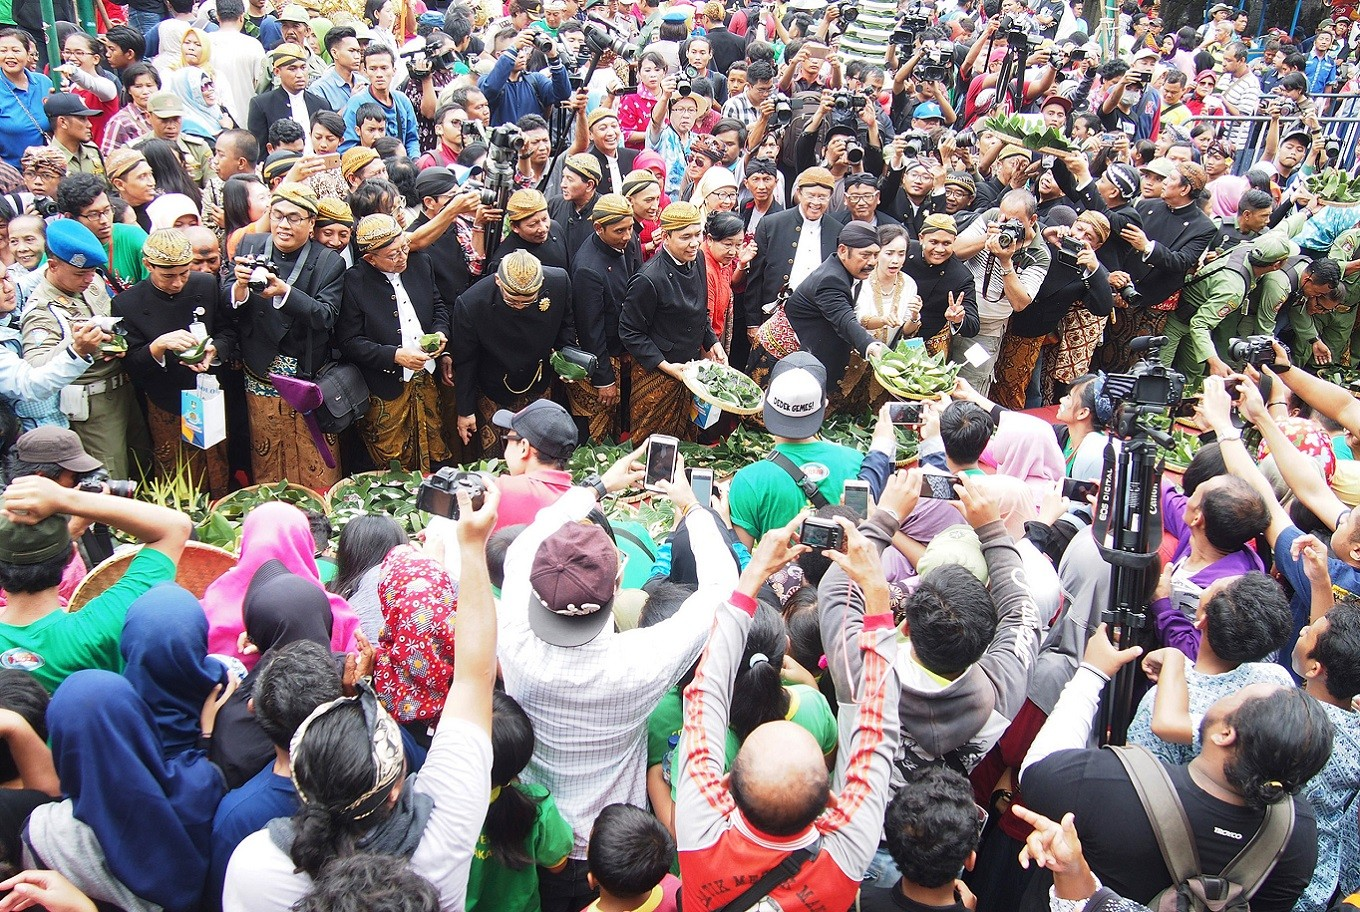 Enthusiasm: Thousands of visitors packed Ngarsopuro for the Jenang Festival, which was officially opened by Surakarta Mayor FX Hadi Rudyatmo.